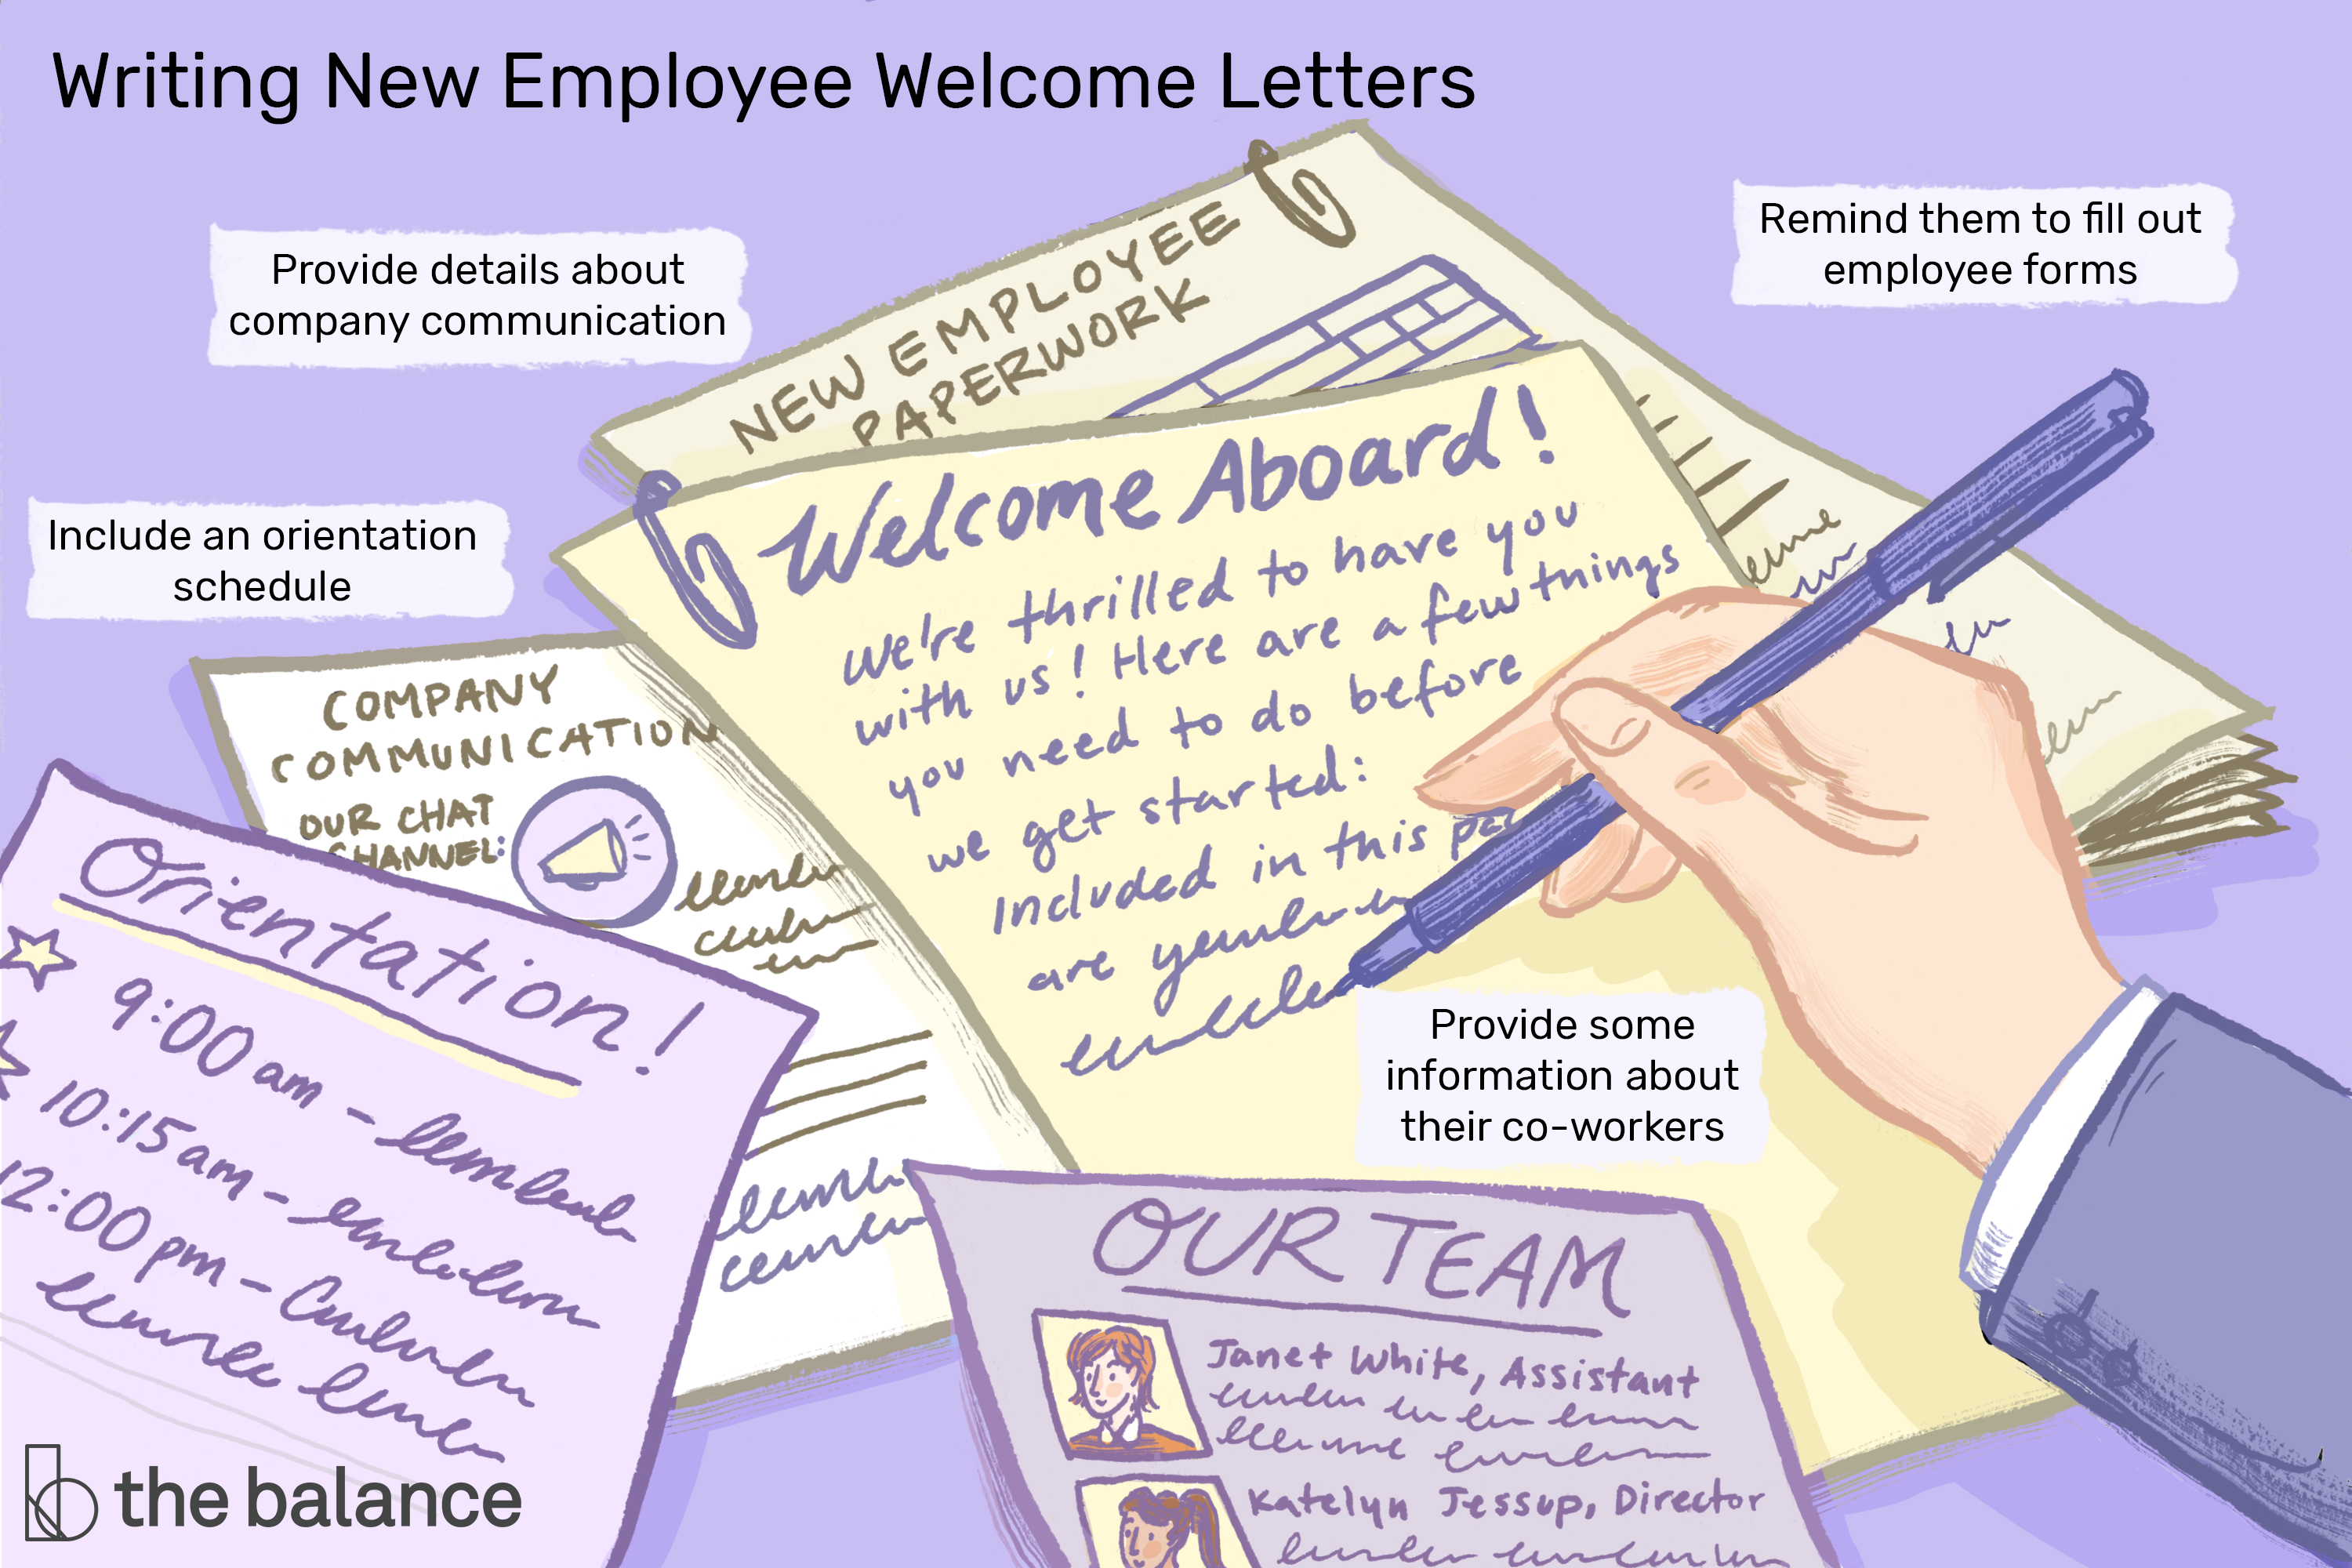 Two Sample Welcome Letters For New Employees